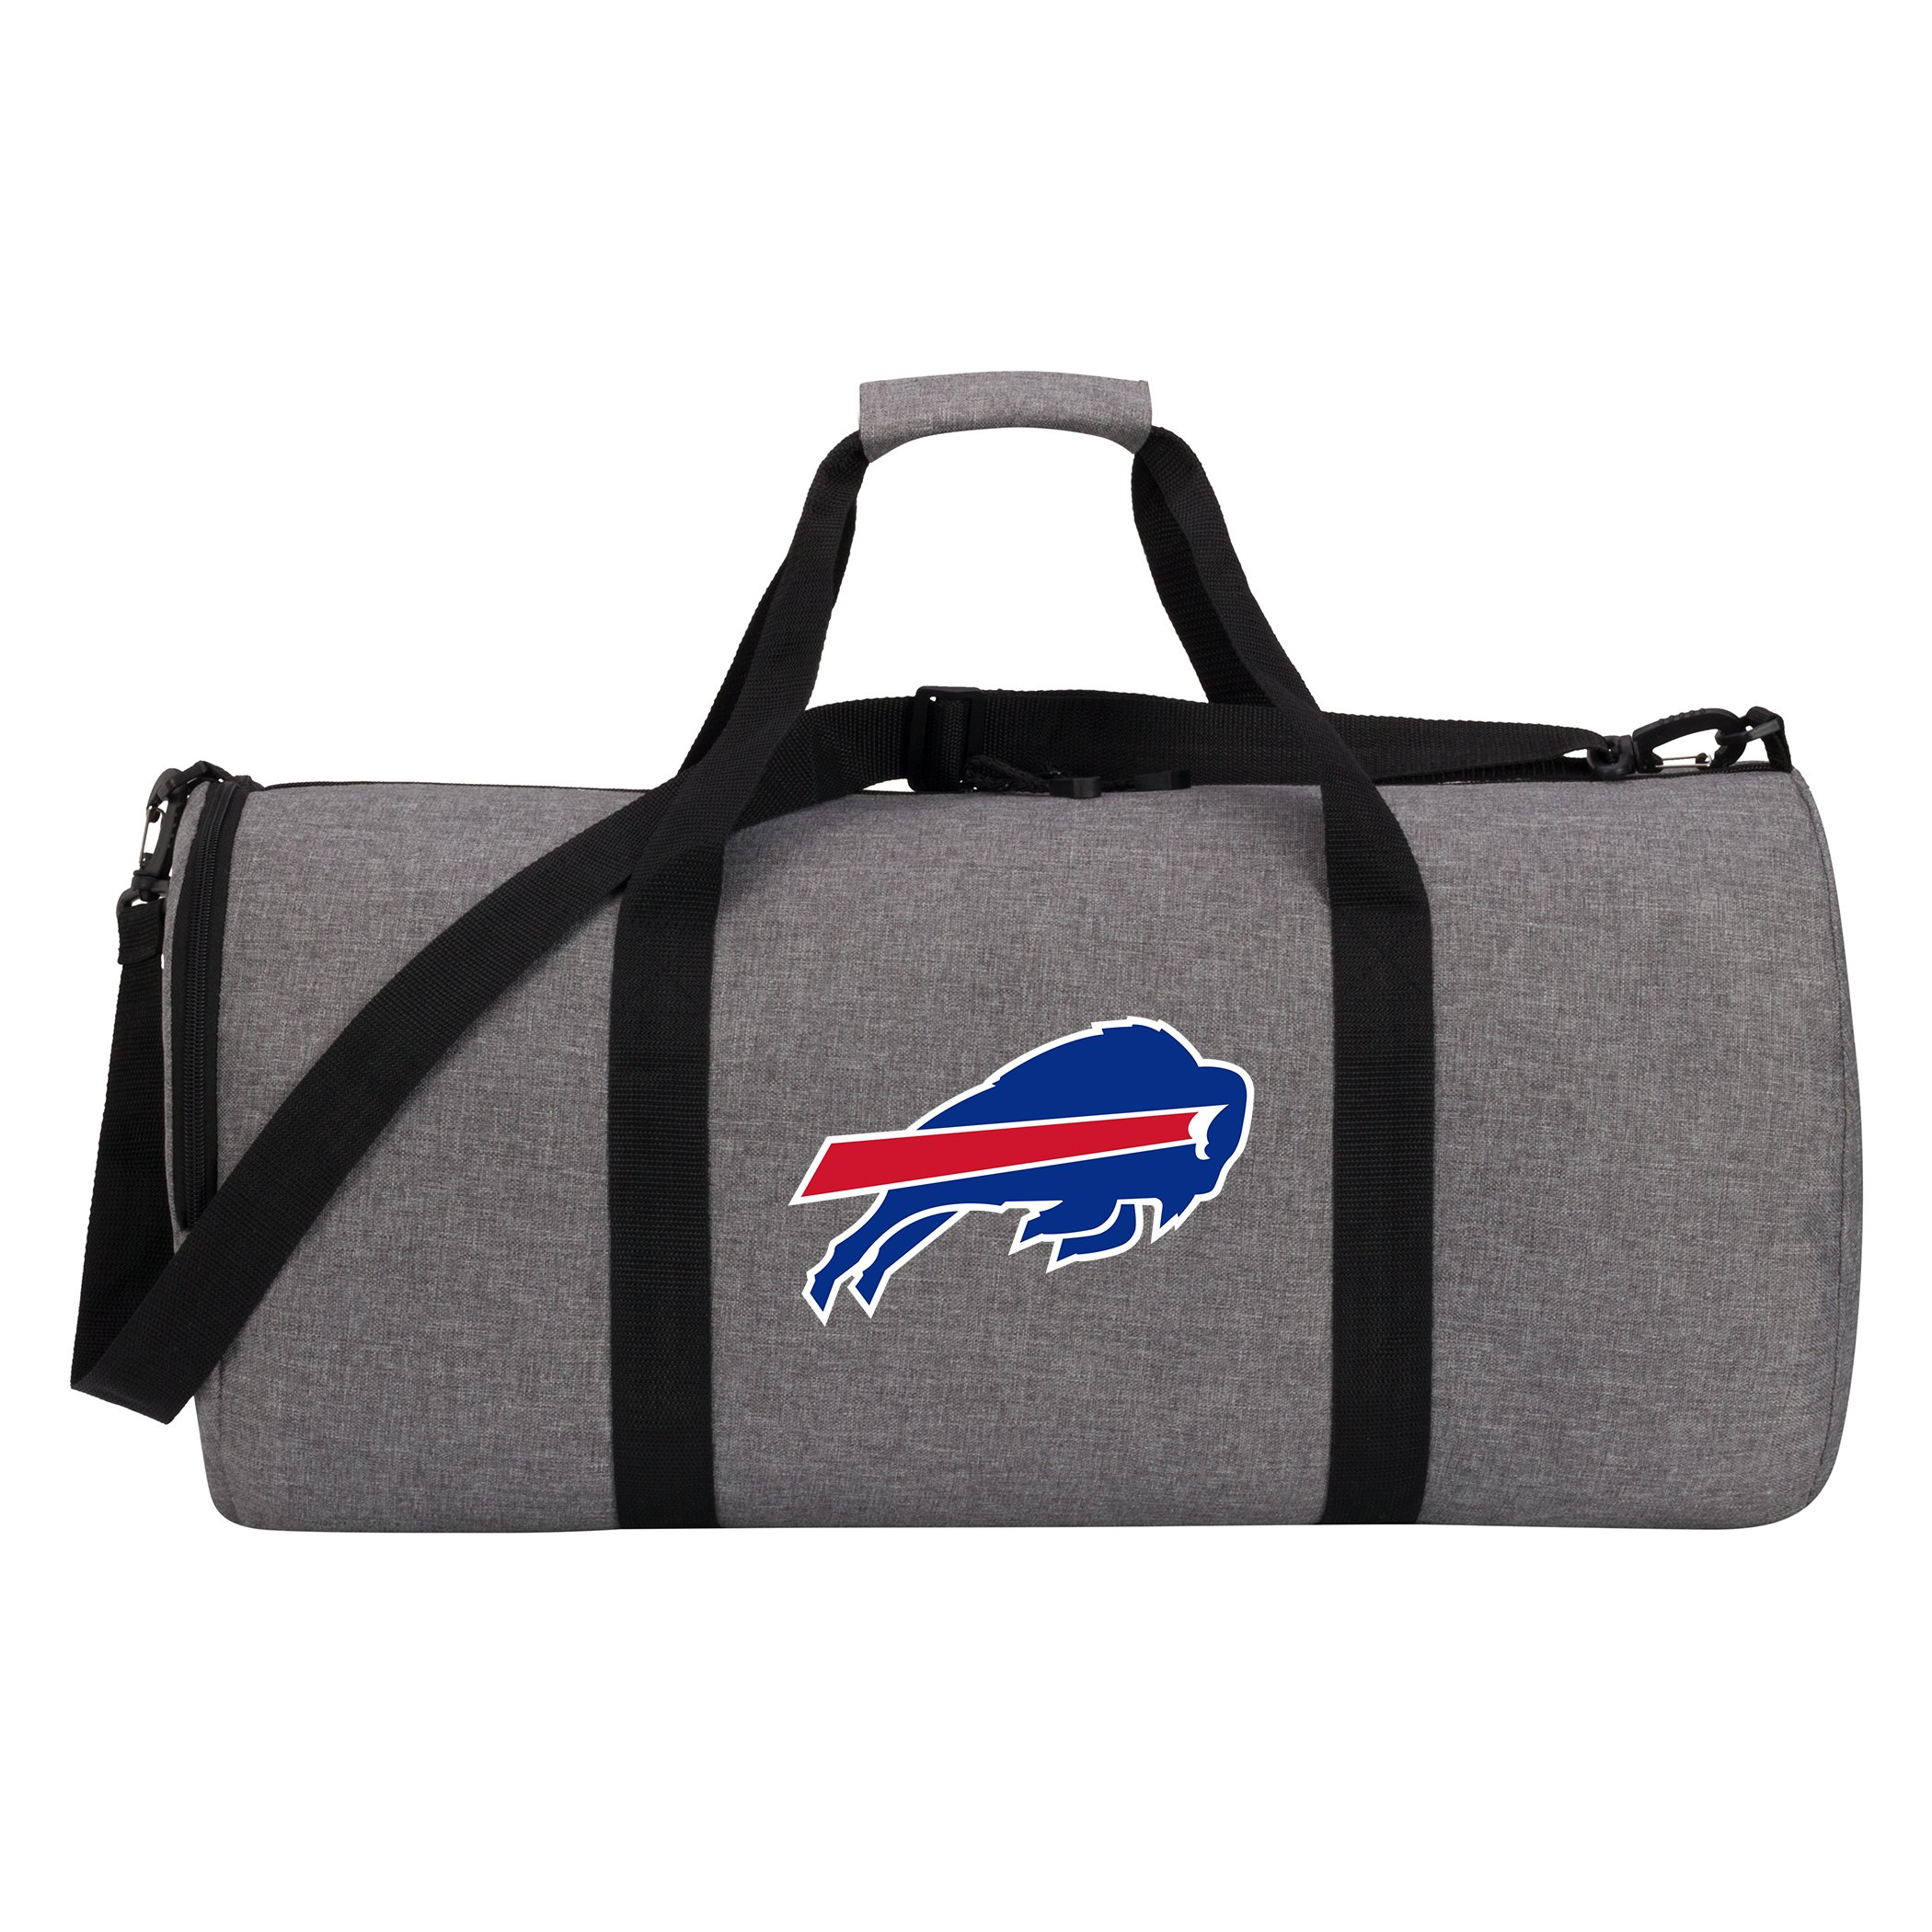 NFL Buffalo Bills ''Wingman'' Duffel''Wingman'' Duffel, Gray, One Size